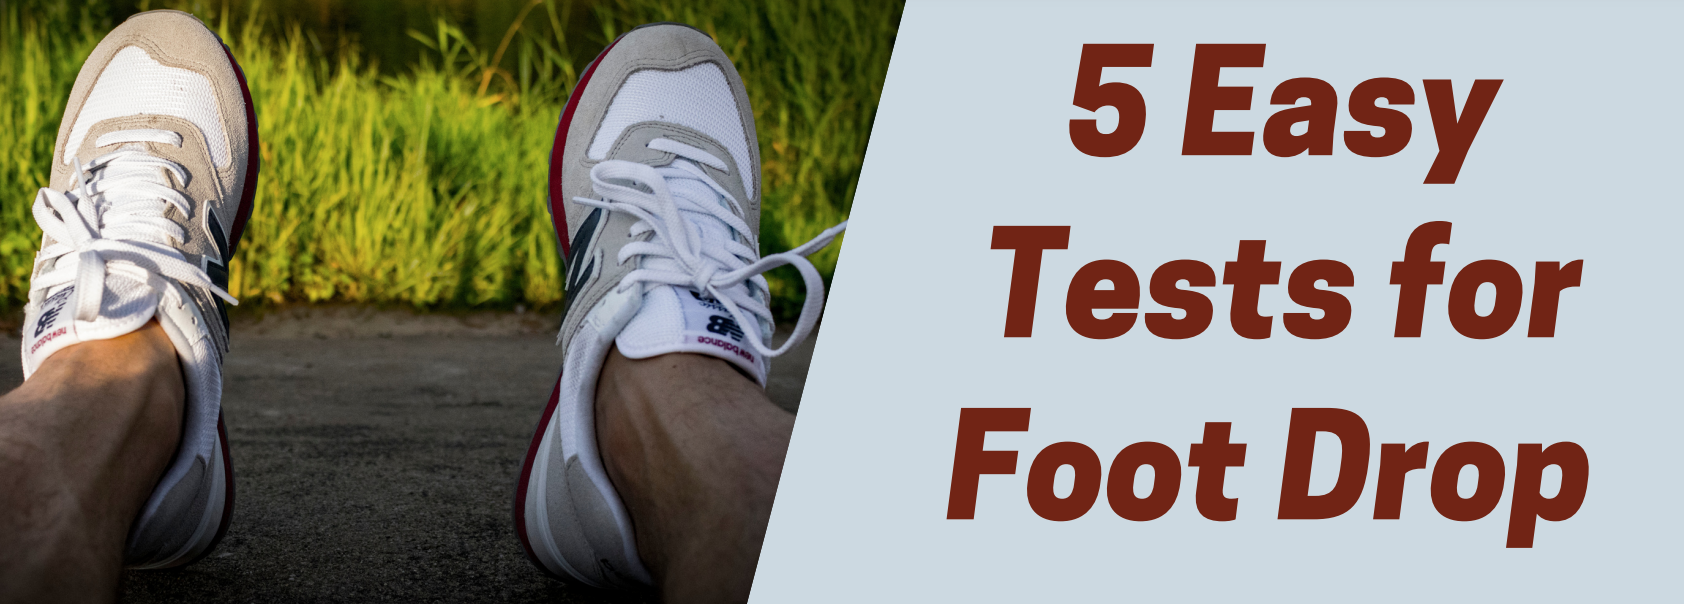 5 Easy Test for Foot Drop